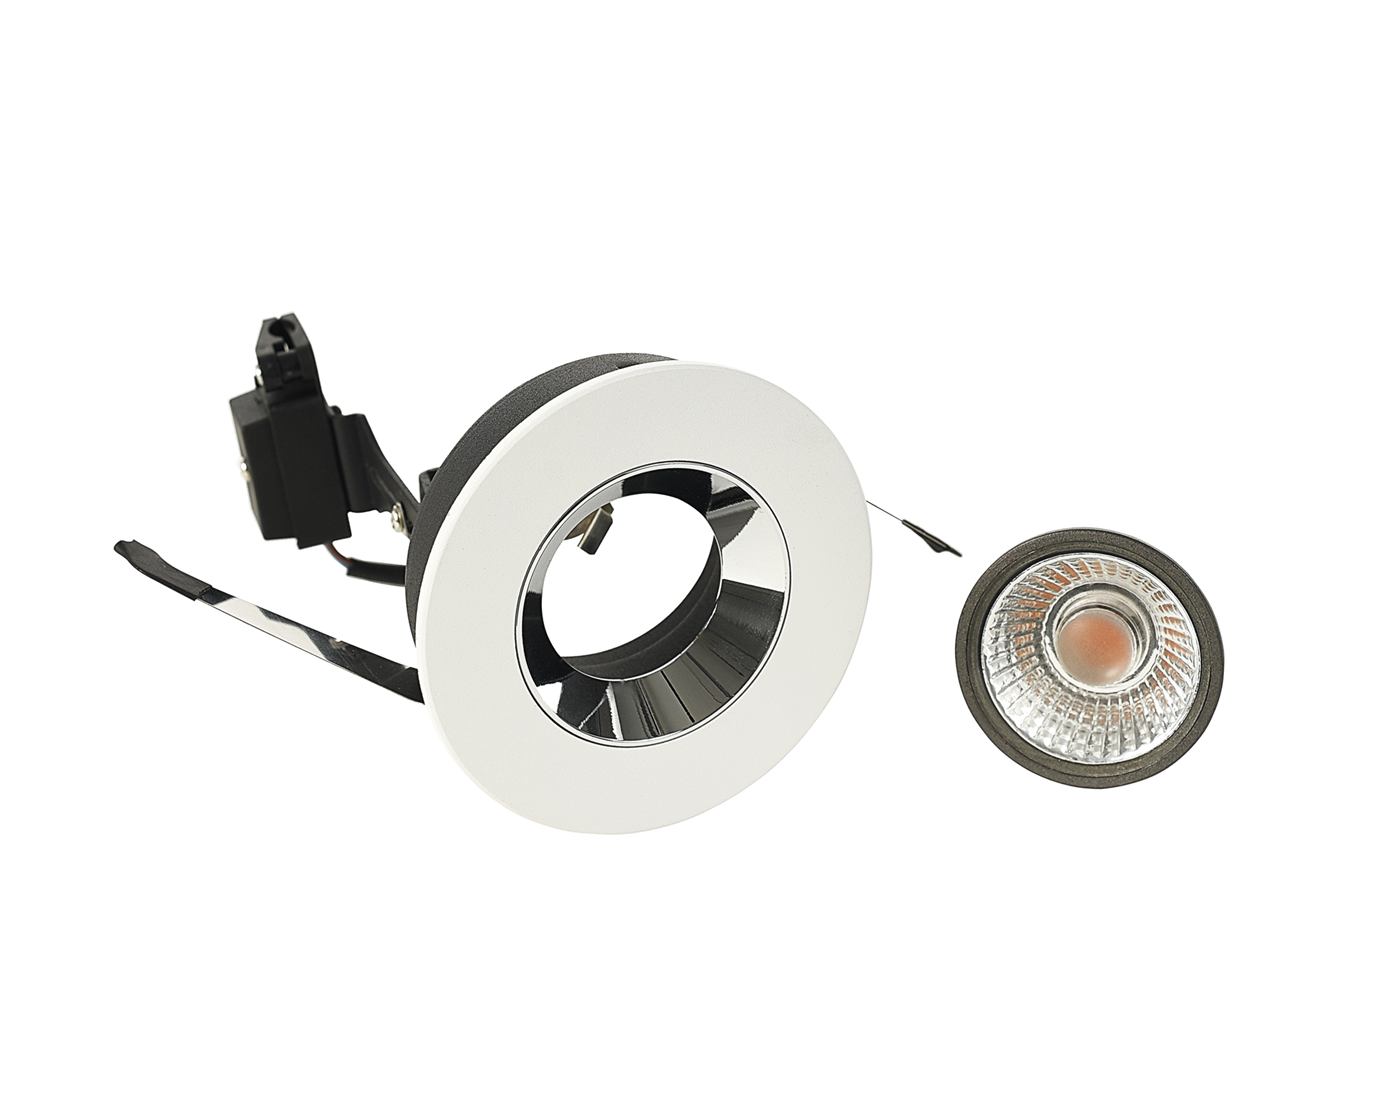 Recessed Round Fixed Downlight White Trim Frosted Glass D:100mm IP20 GU10  c/w lamp